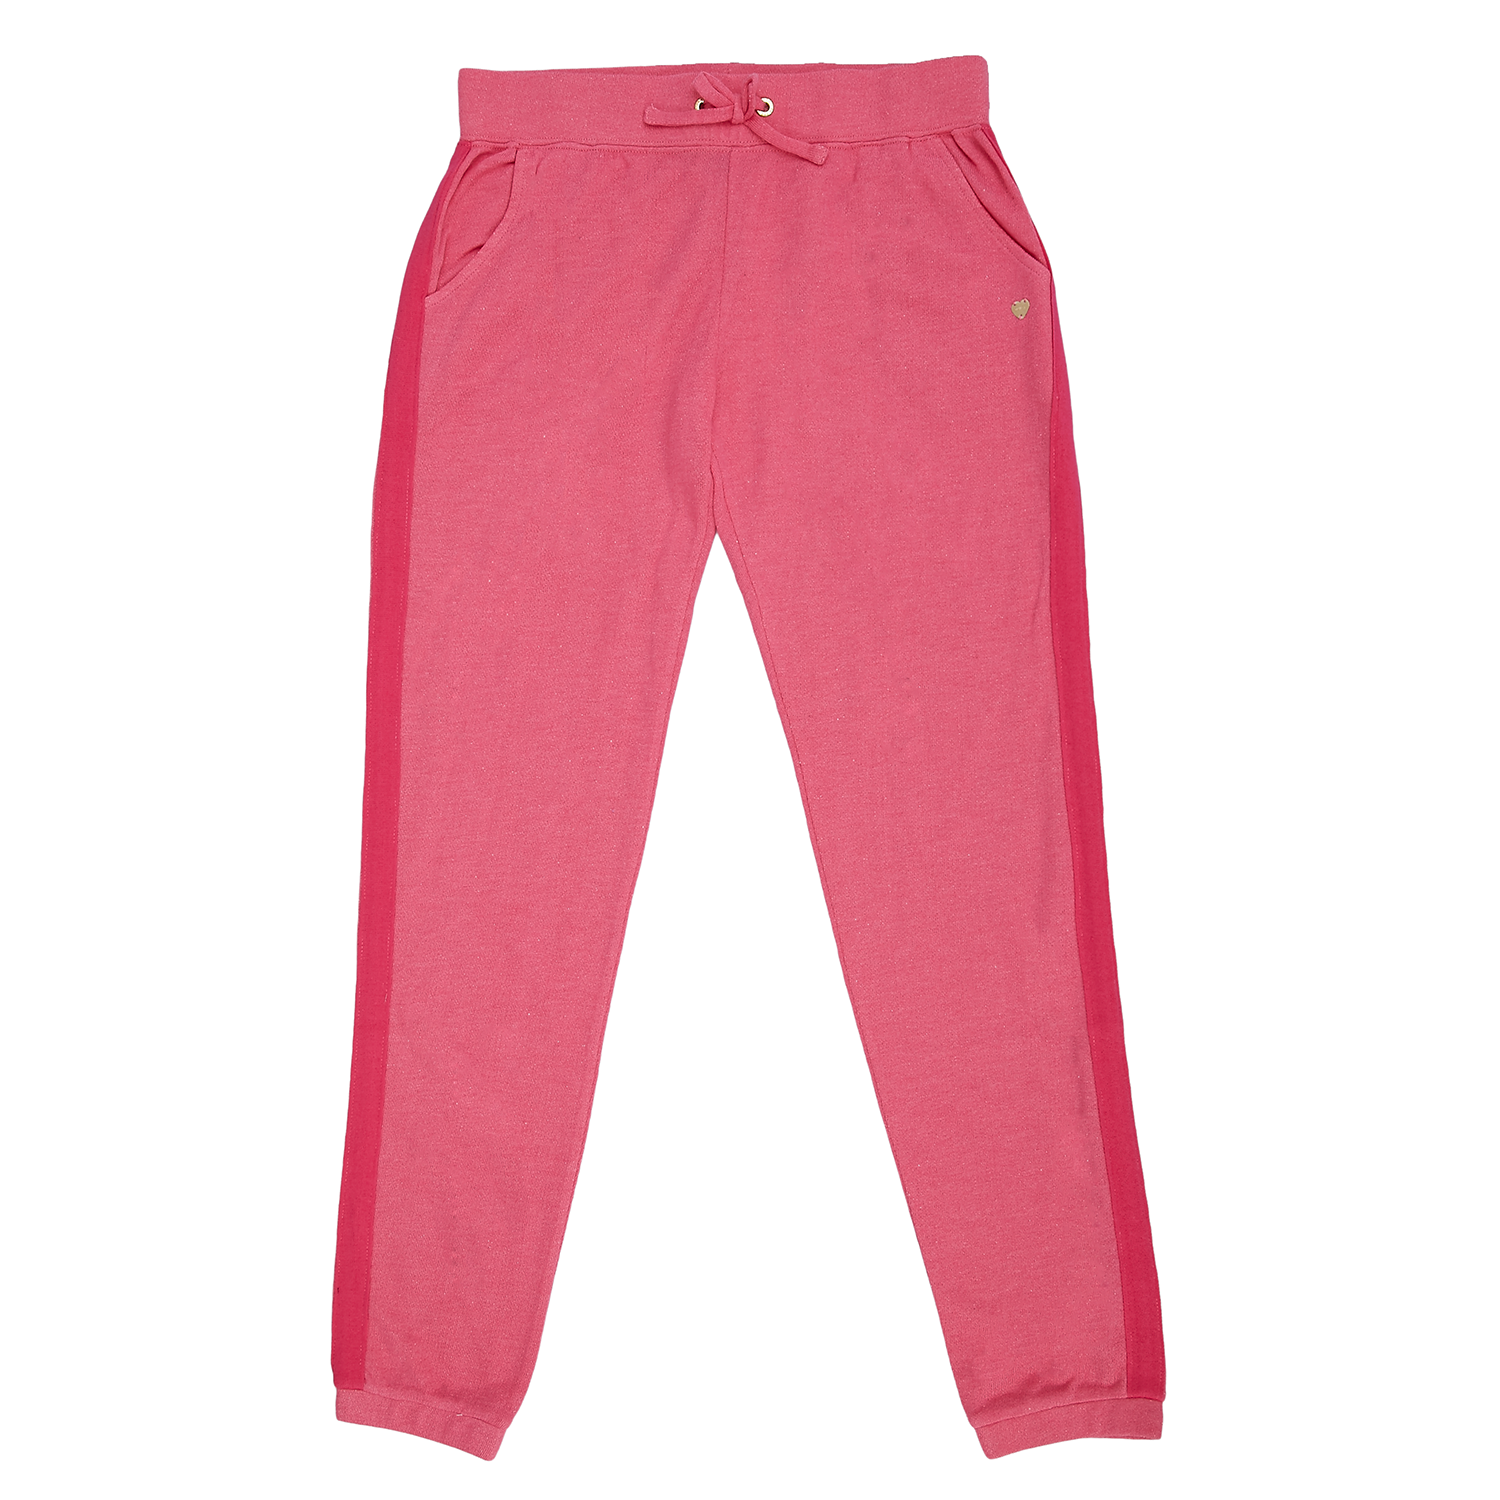 a6d0ee6573d JUICY COUTURE KIDS - Παιδικό παντελόνι Juicy Couture φούξια